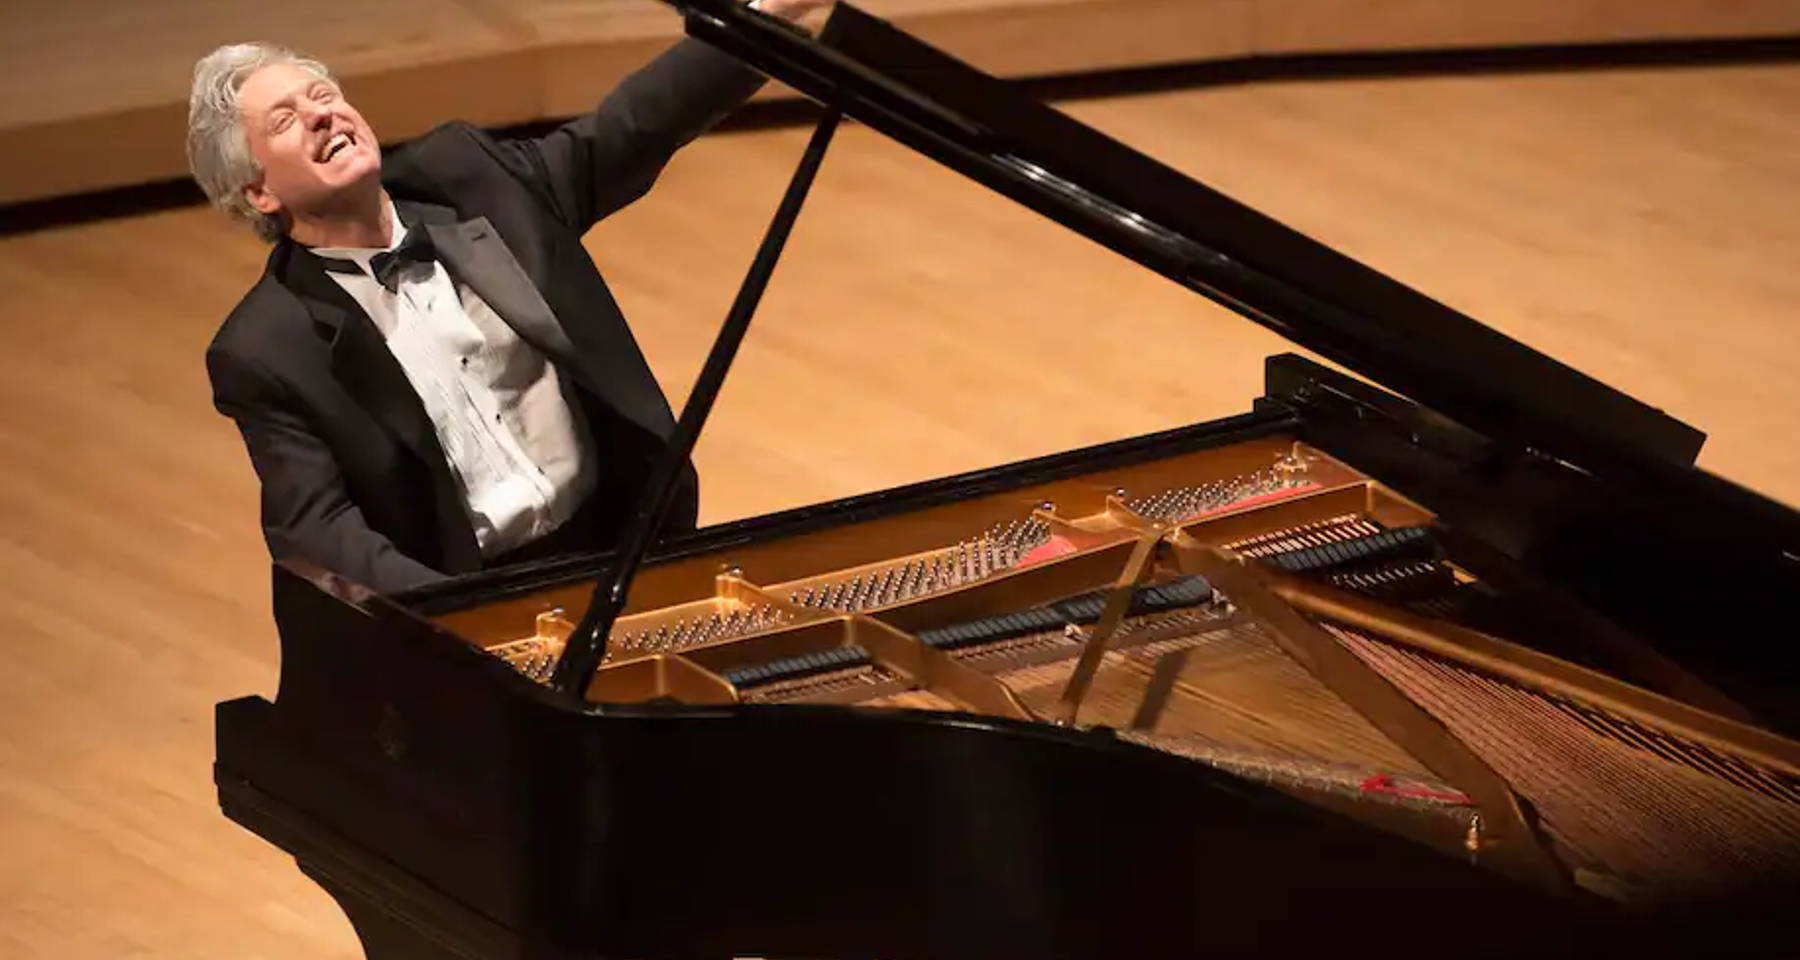 An evening with Pianist and Raconteur Brian Ganz: Romanticism and the Revolutionary Spirit in the works ofChopin and Delacroix